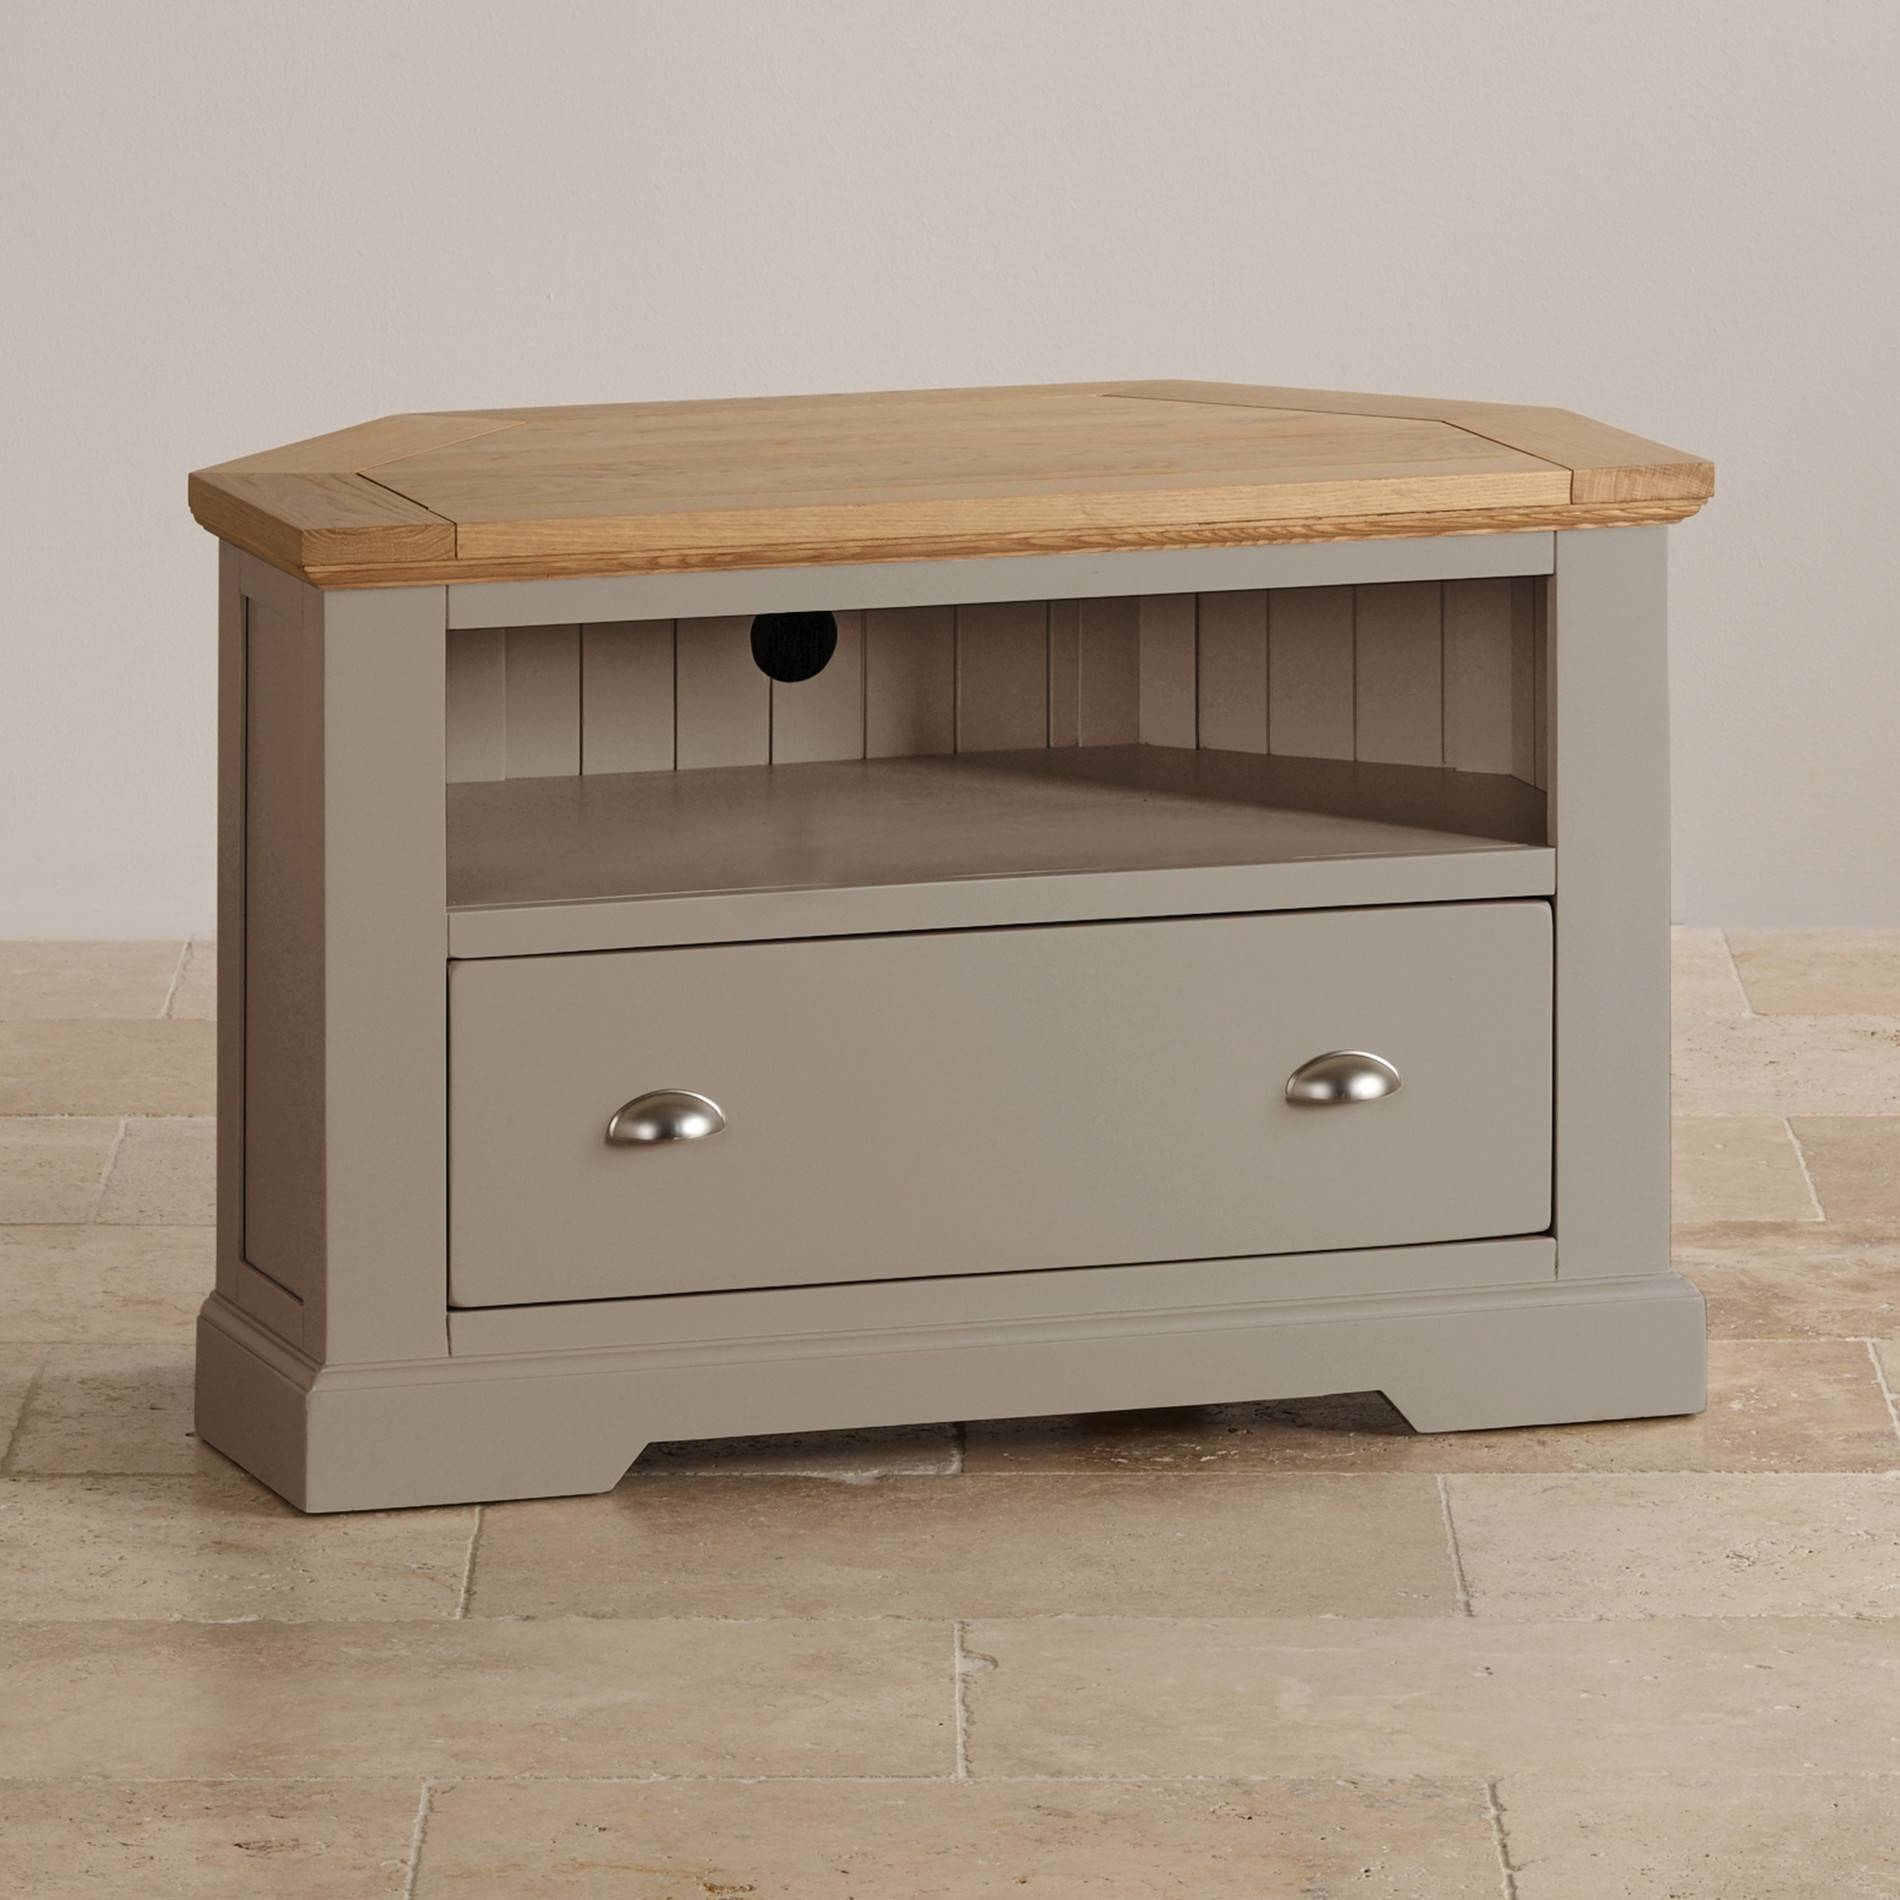 St Ives Corner Tv Unit In Grey Painted Acacia With Oak Top Throughout Corner Oak Tv Stands (View 12 of 15)